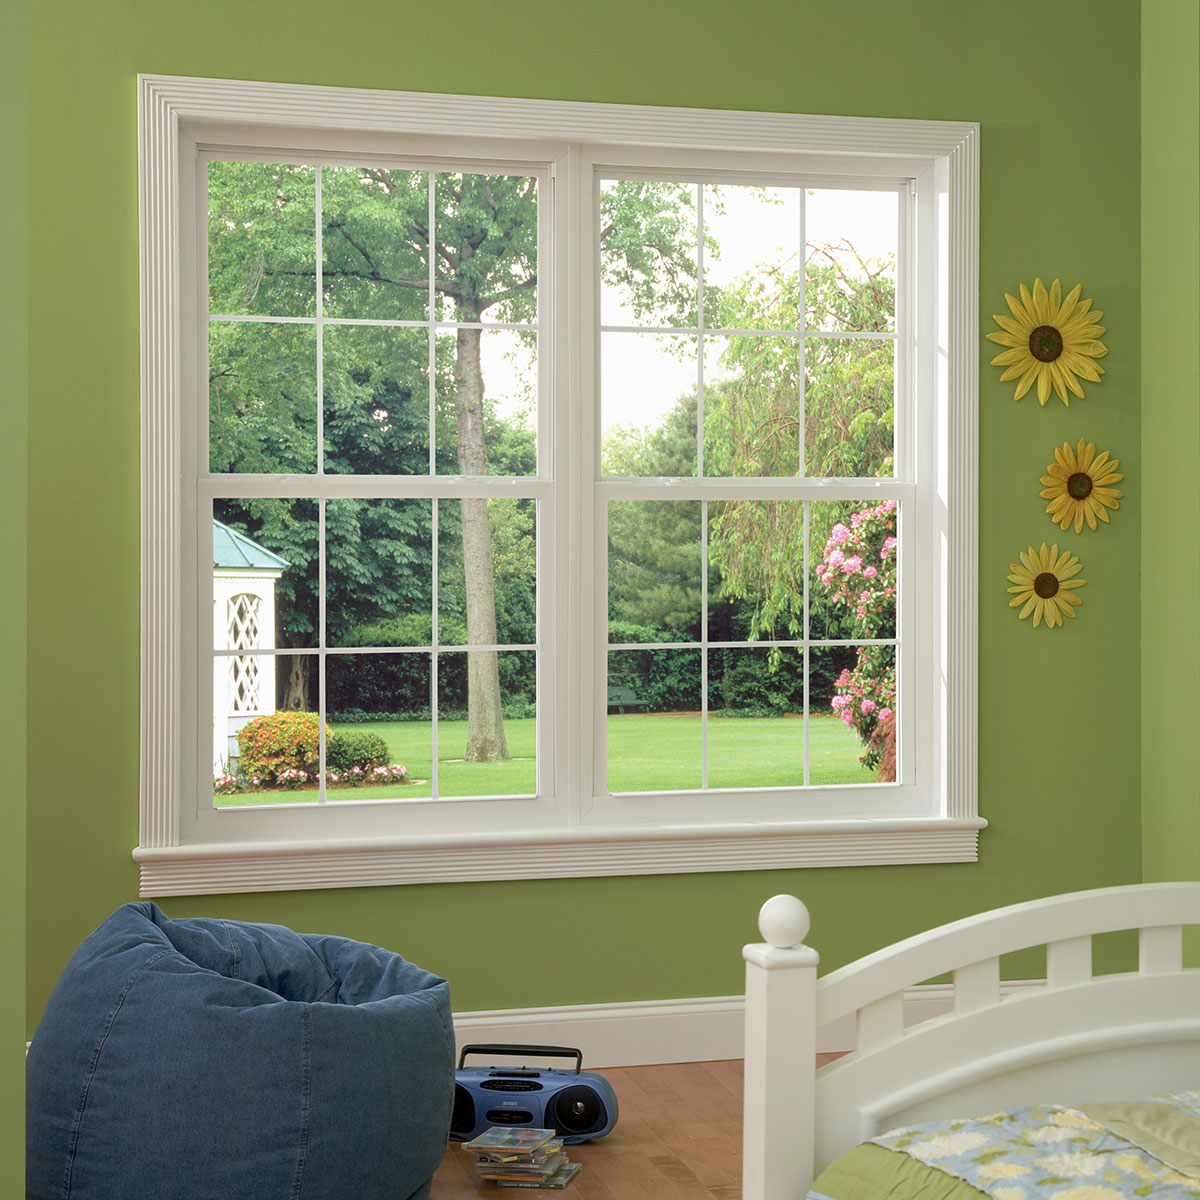 White Series 8050 Side Load Single Hung Windows with Colonial Grids